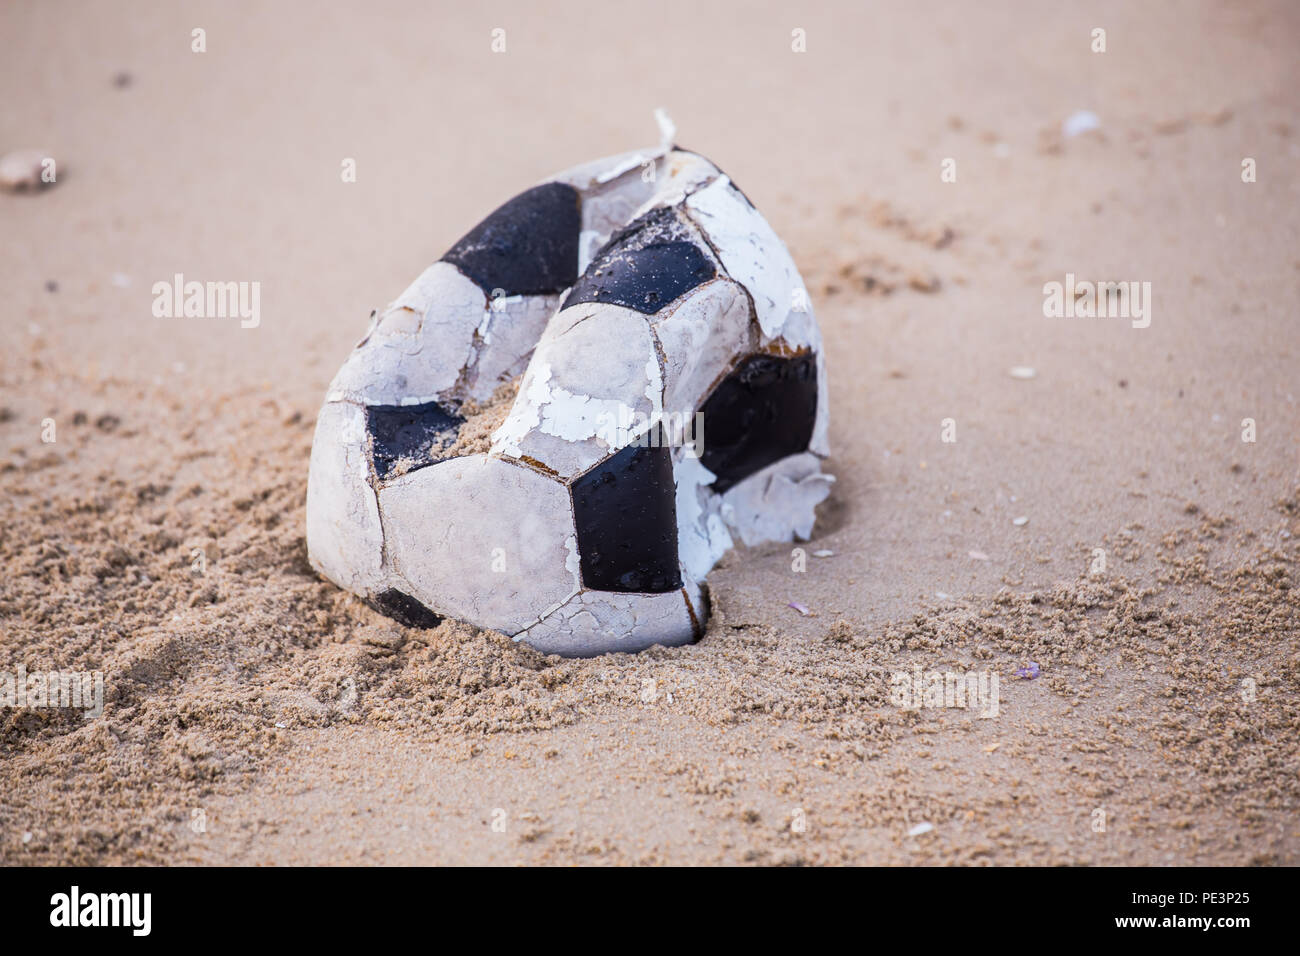 Football old, torn and dirty marks were left on the beach. - Stock Image